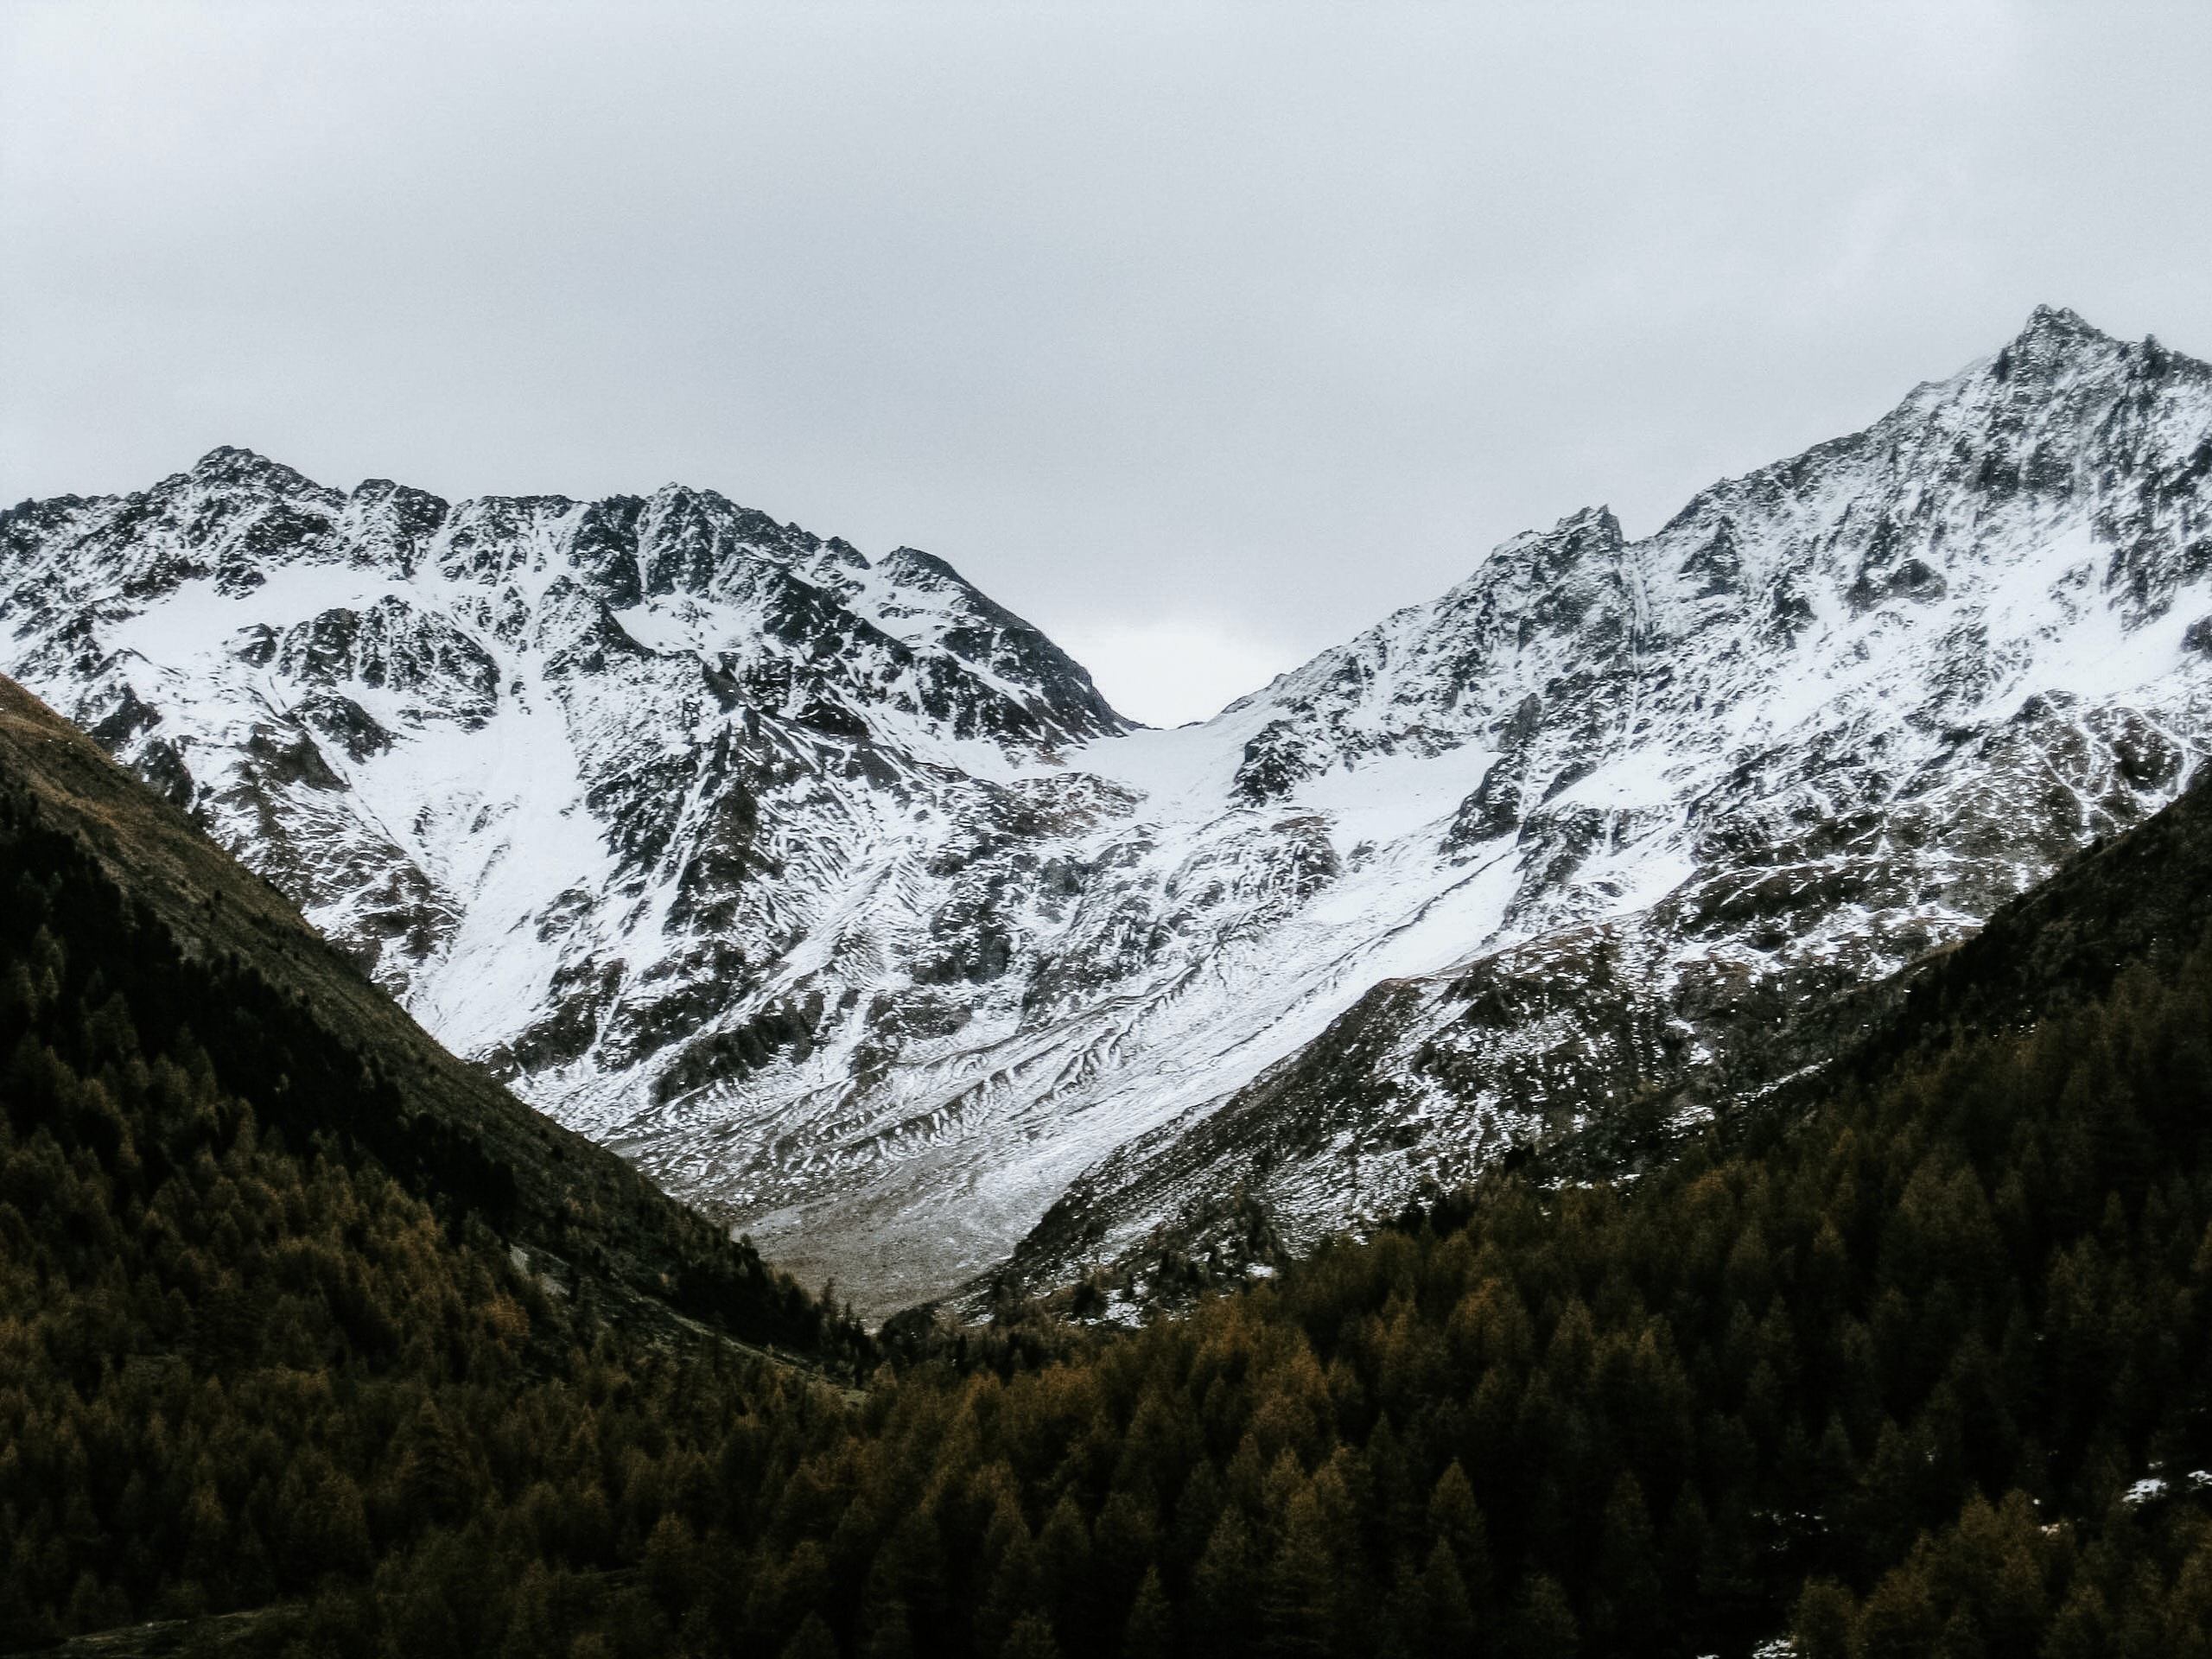 snow covered mountain at daytime